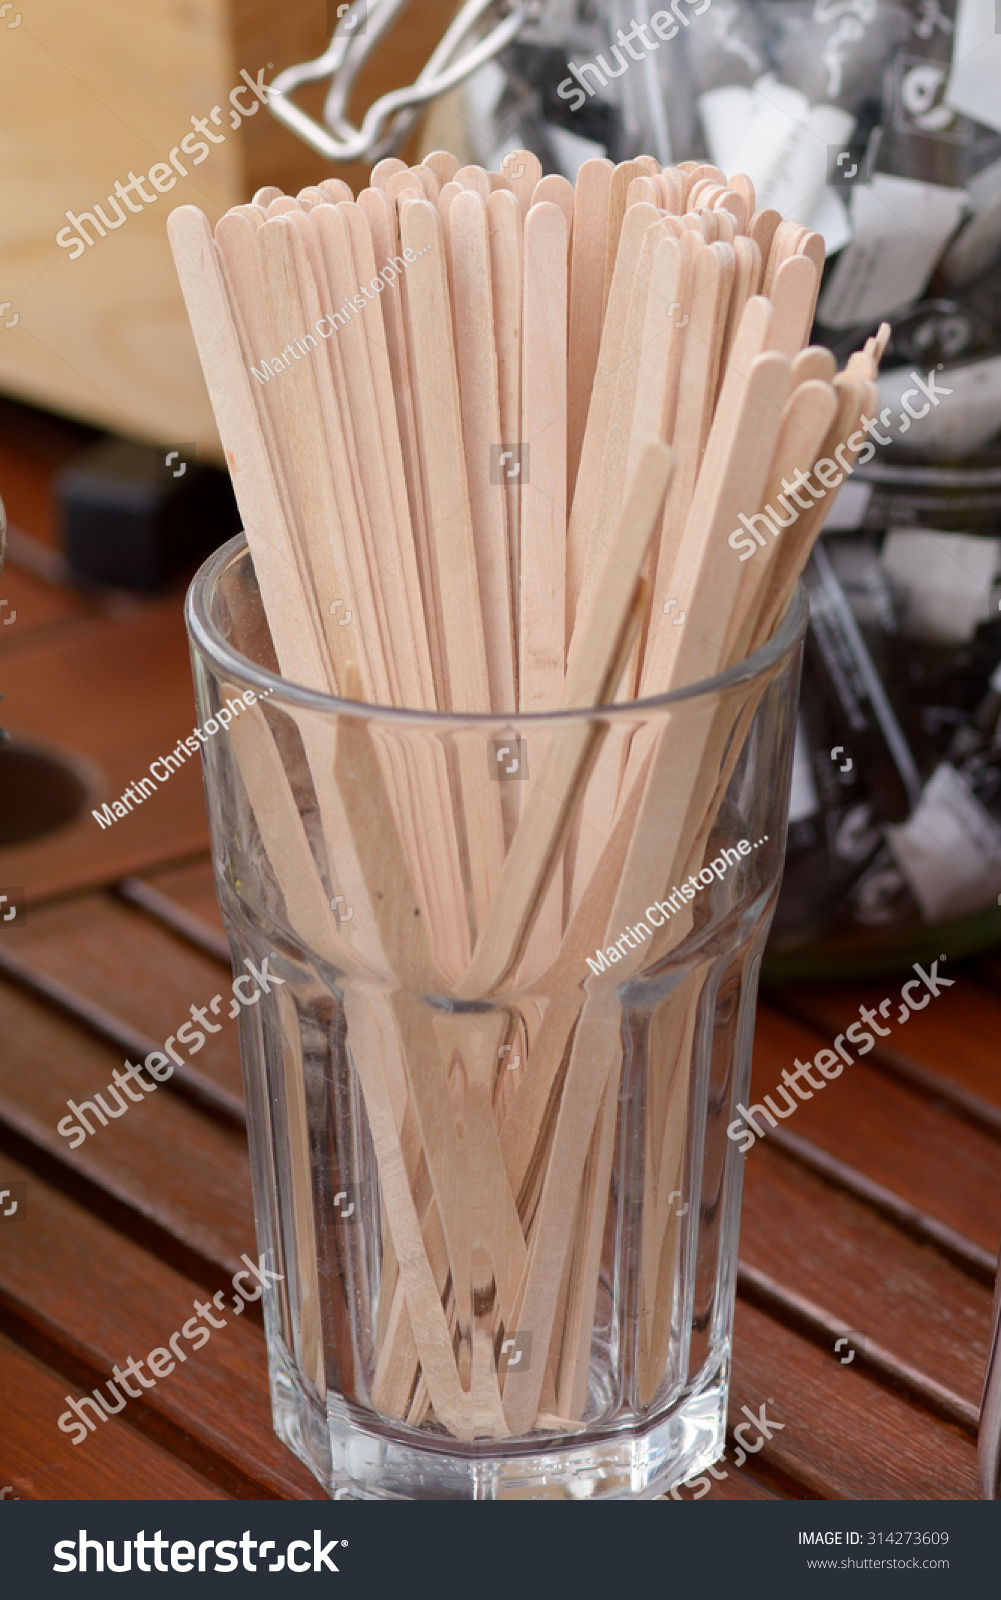 Wooden drink stirrers in glass on table at cafe stock